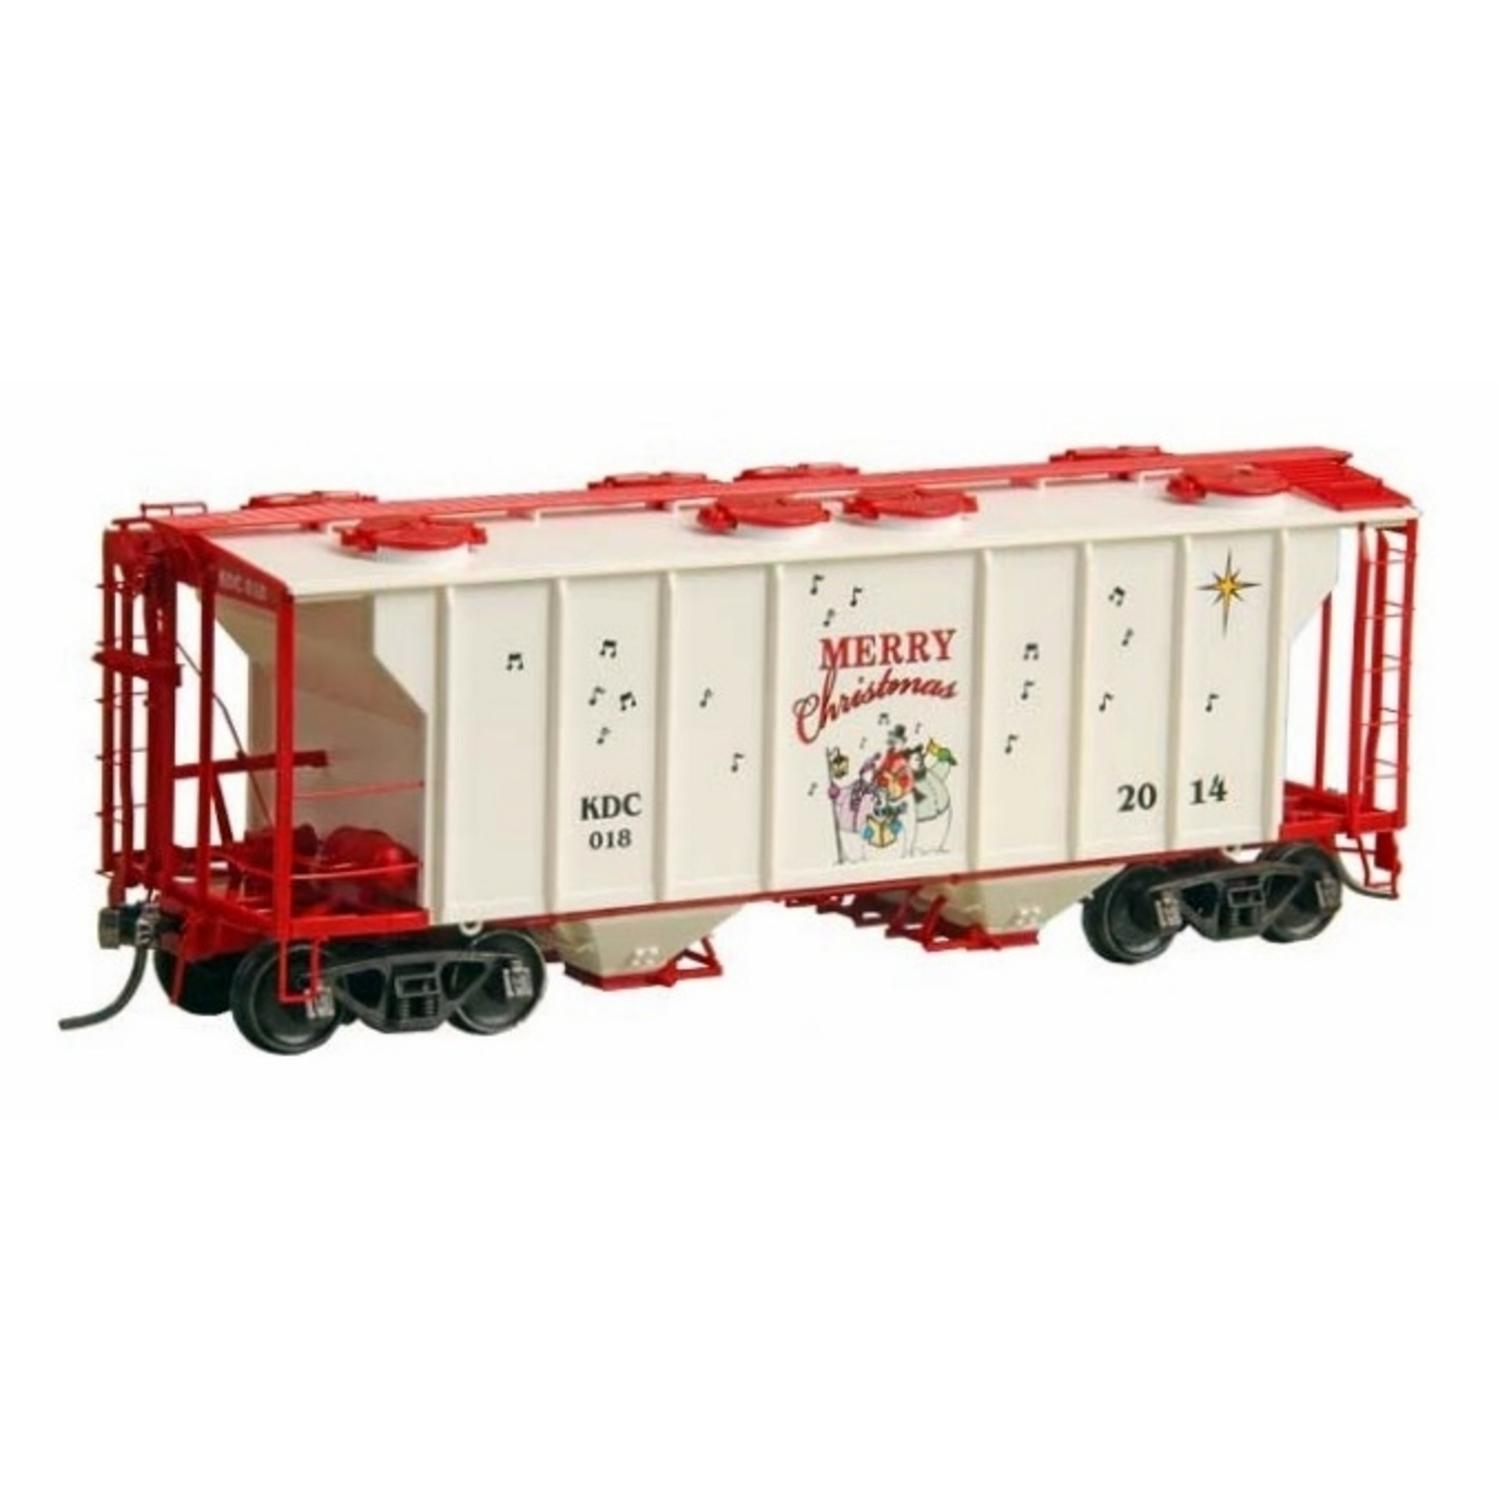 H0 PS-2 2-Bay Covered Hopper - Ready to Run